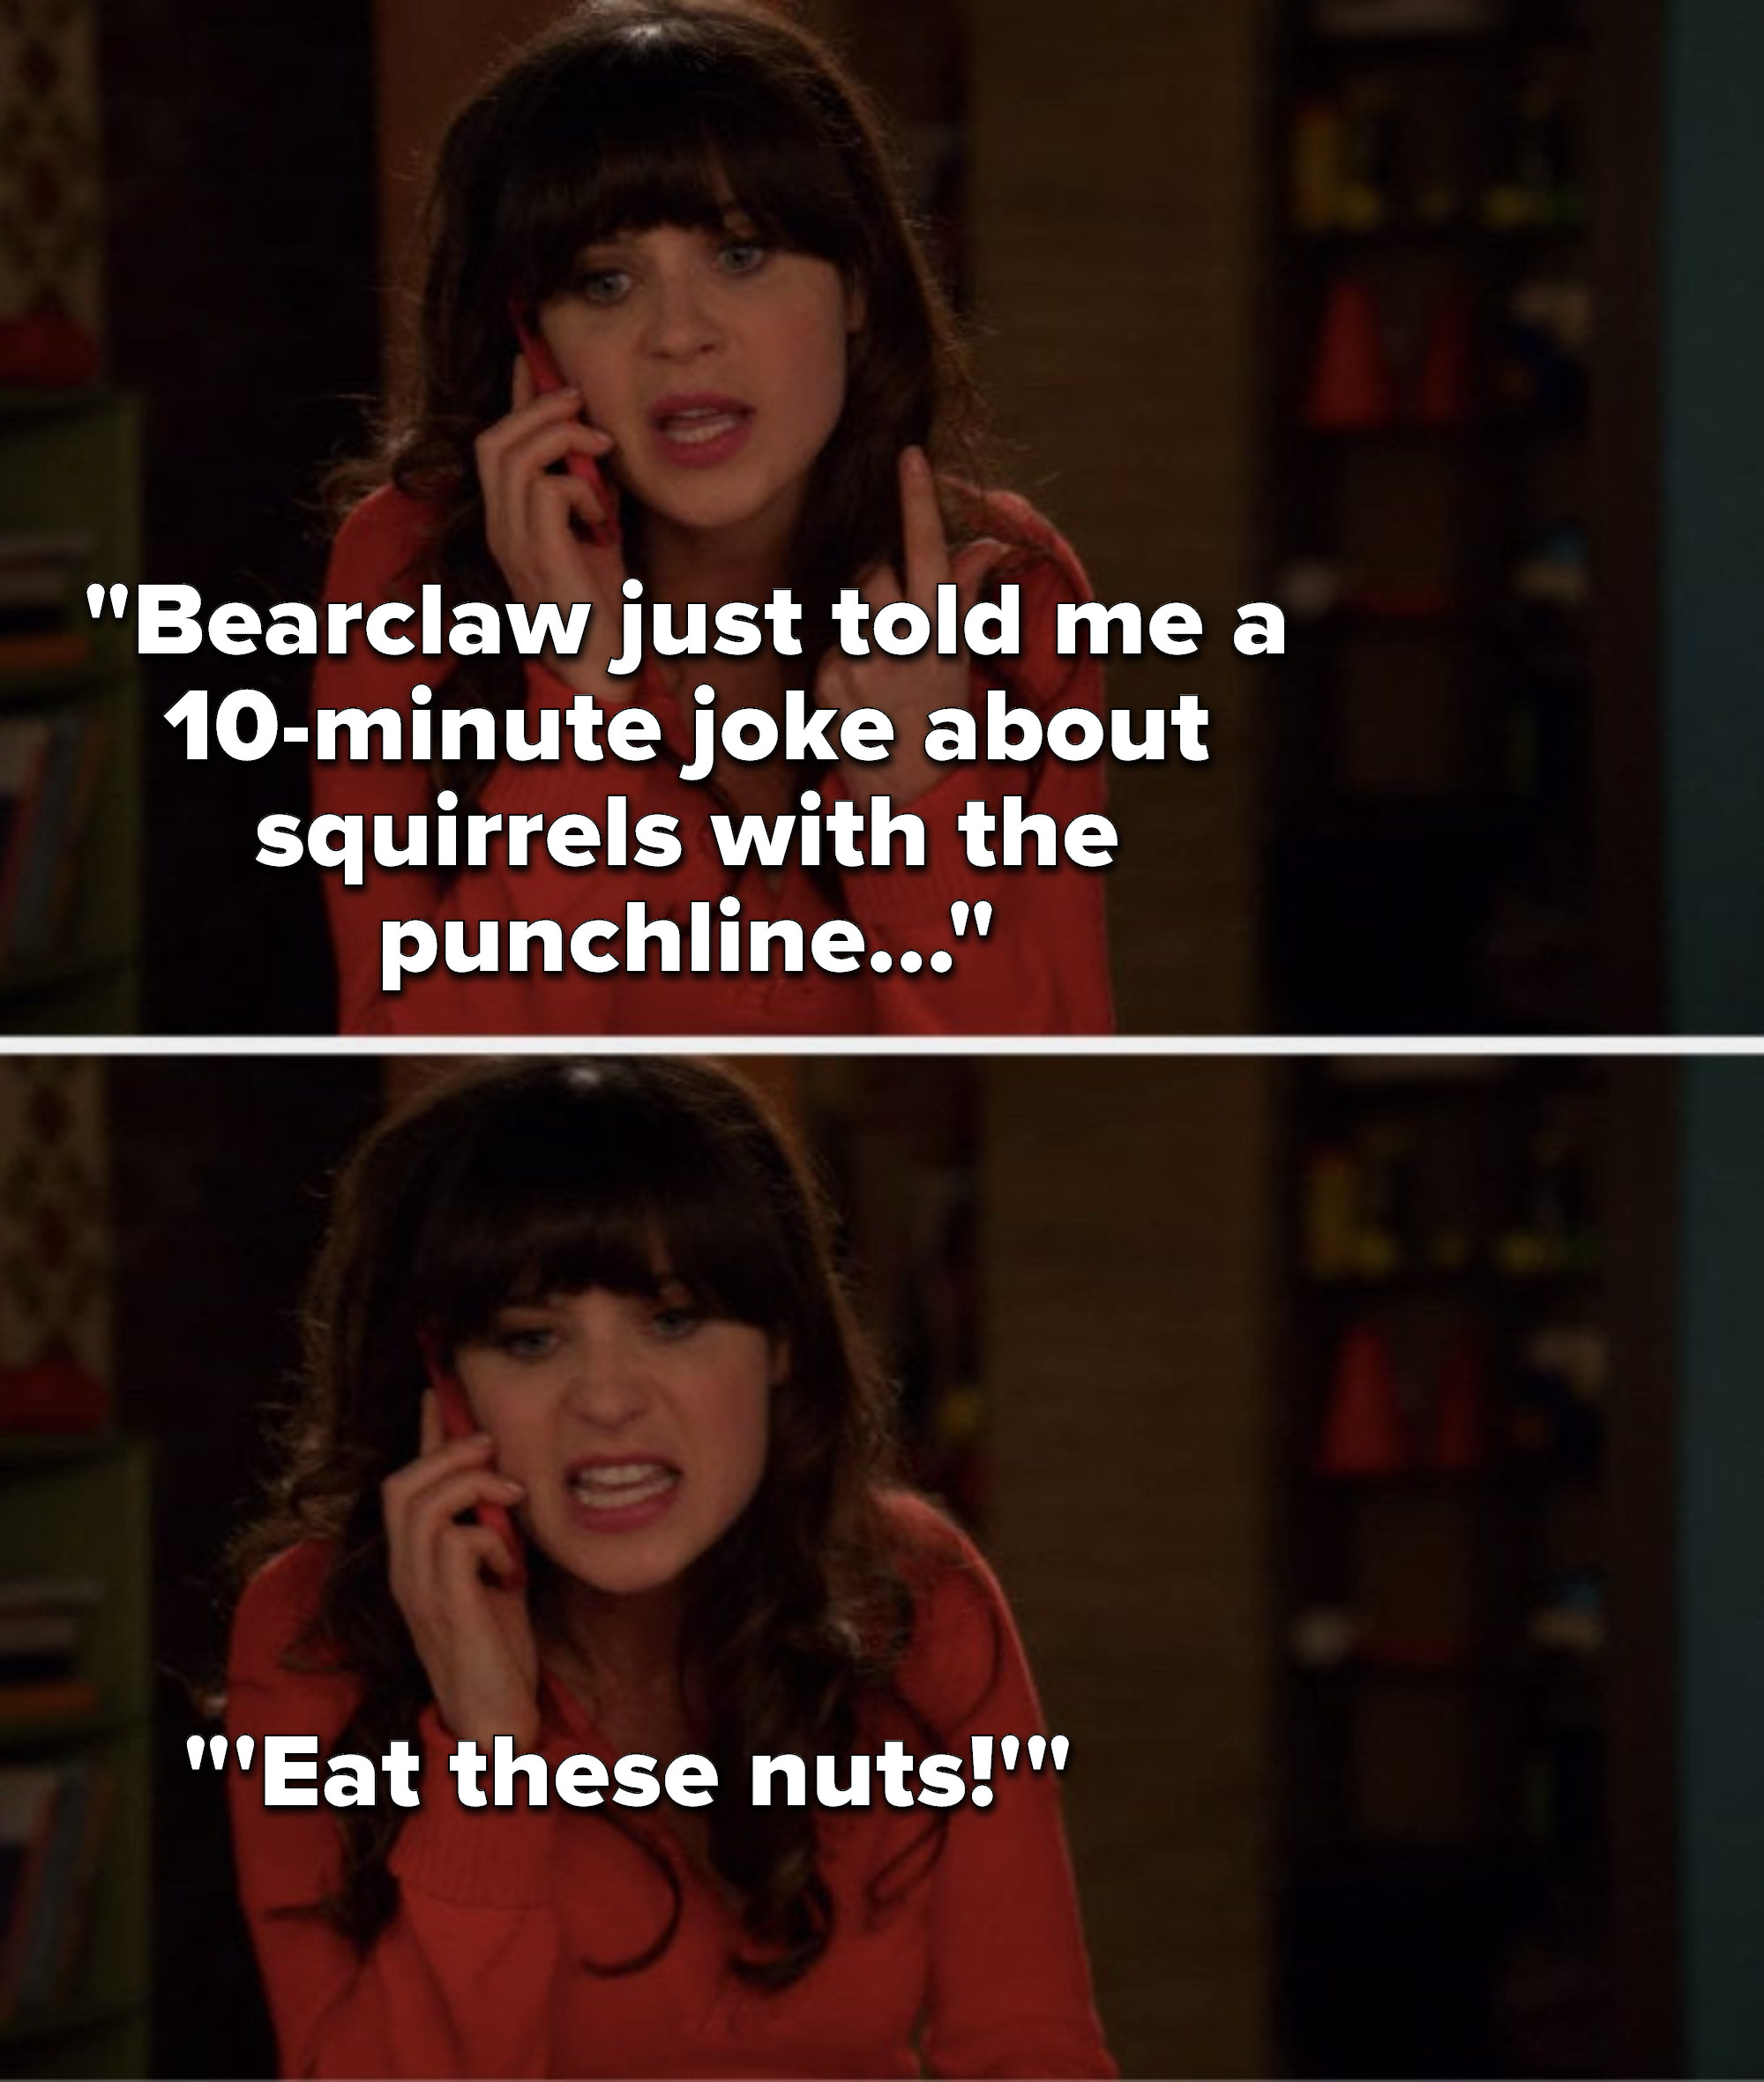 Jess says, Bearclaw just told me a 10 minute joke about squirrels with the punchline, Eat these nuts